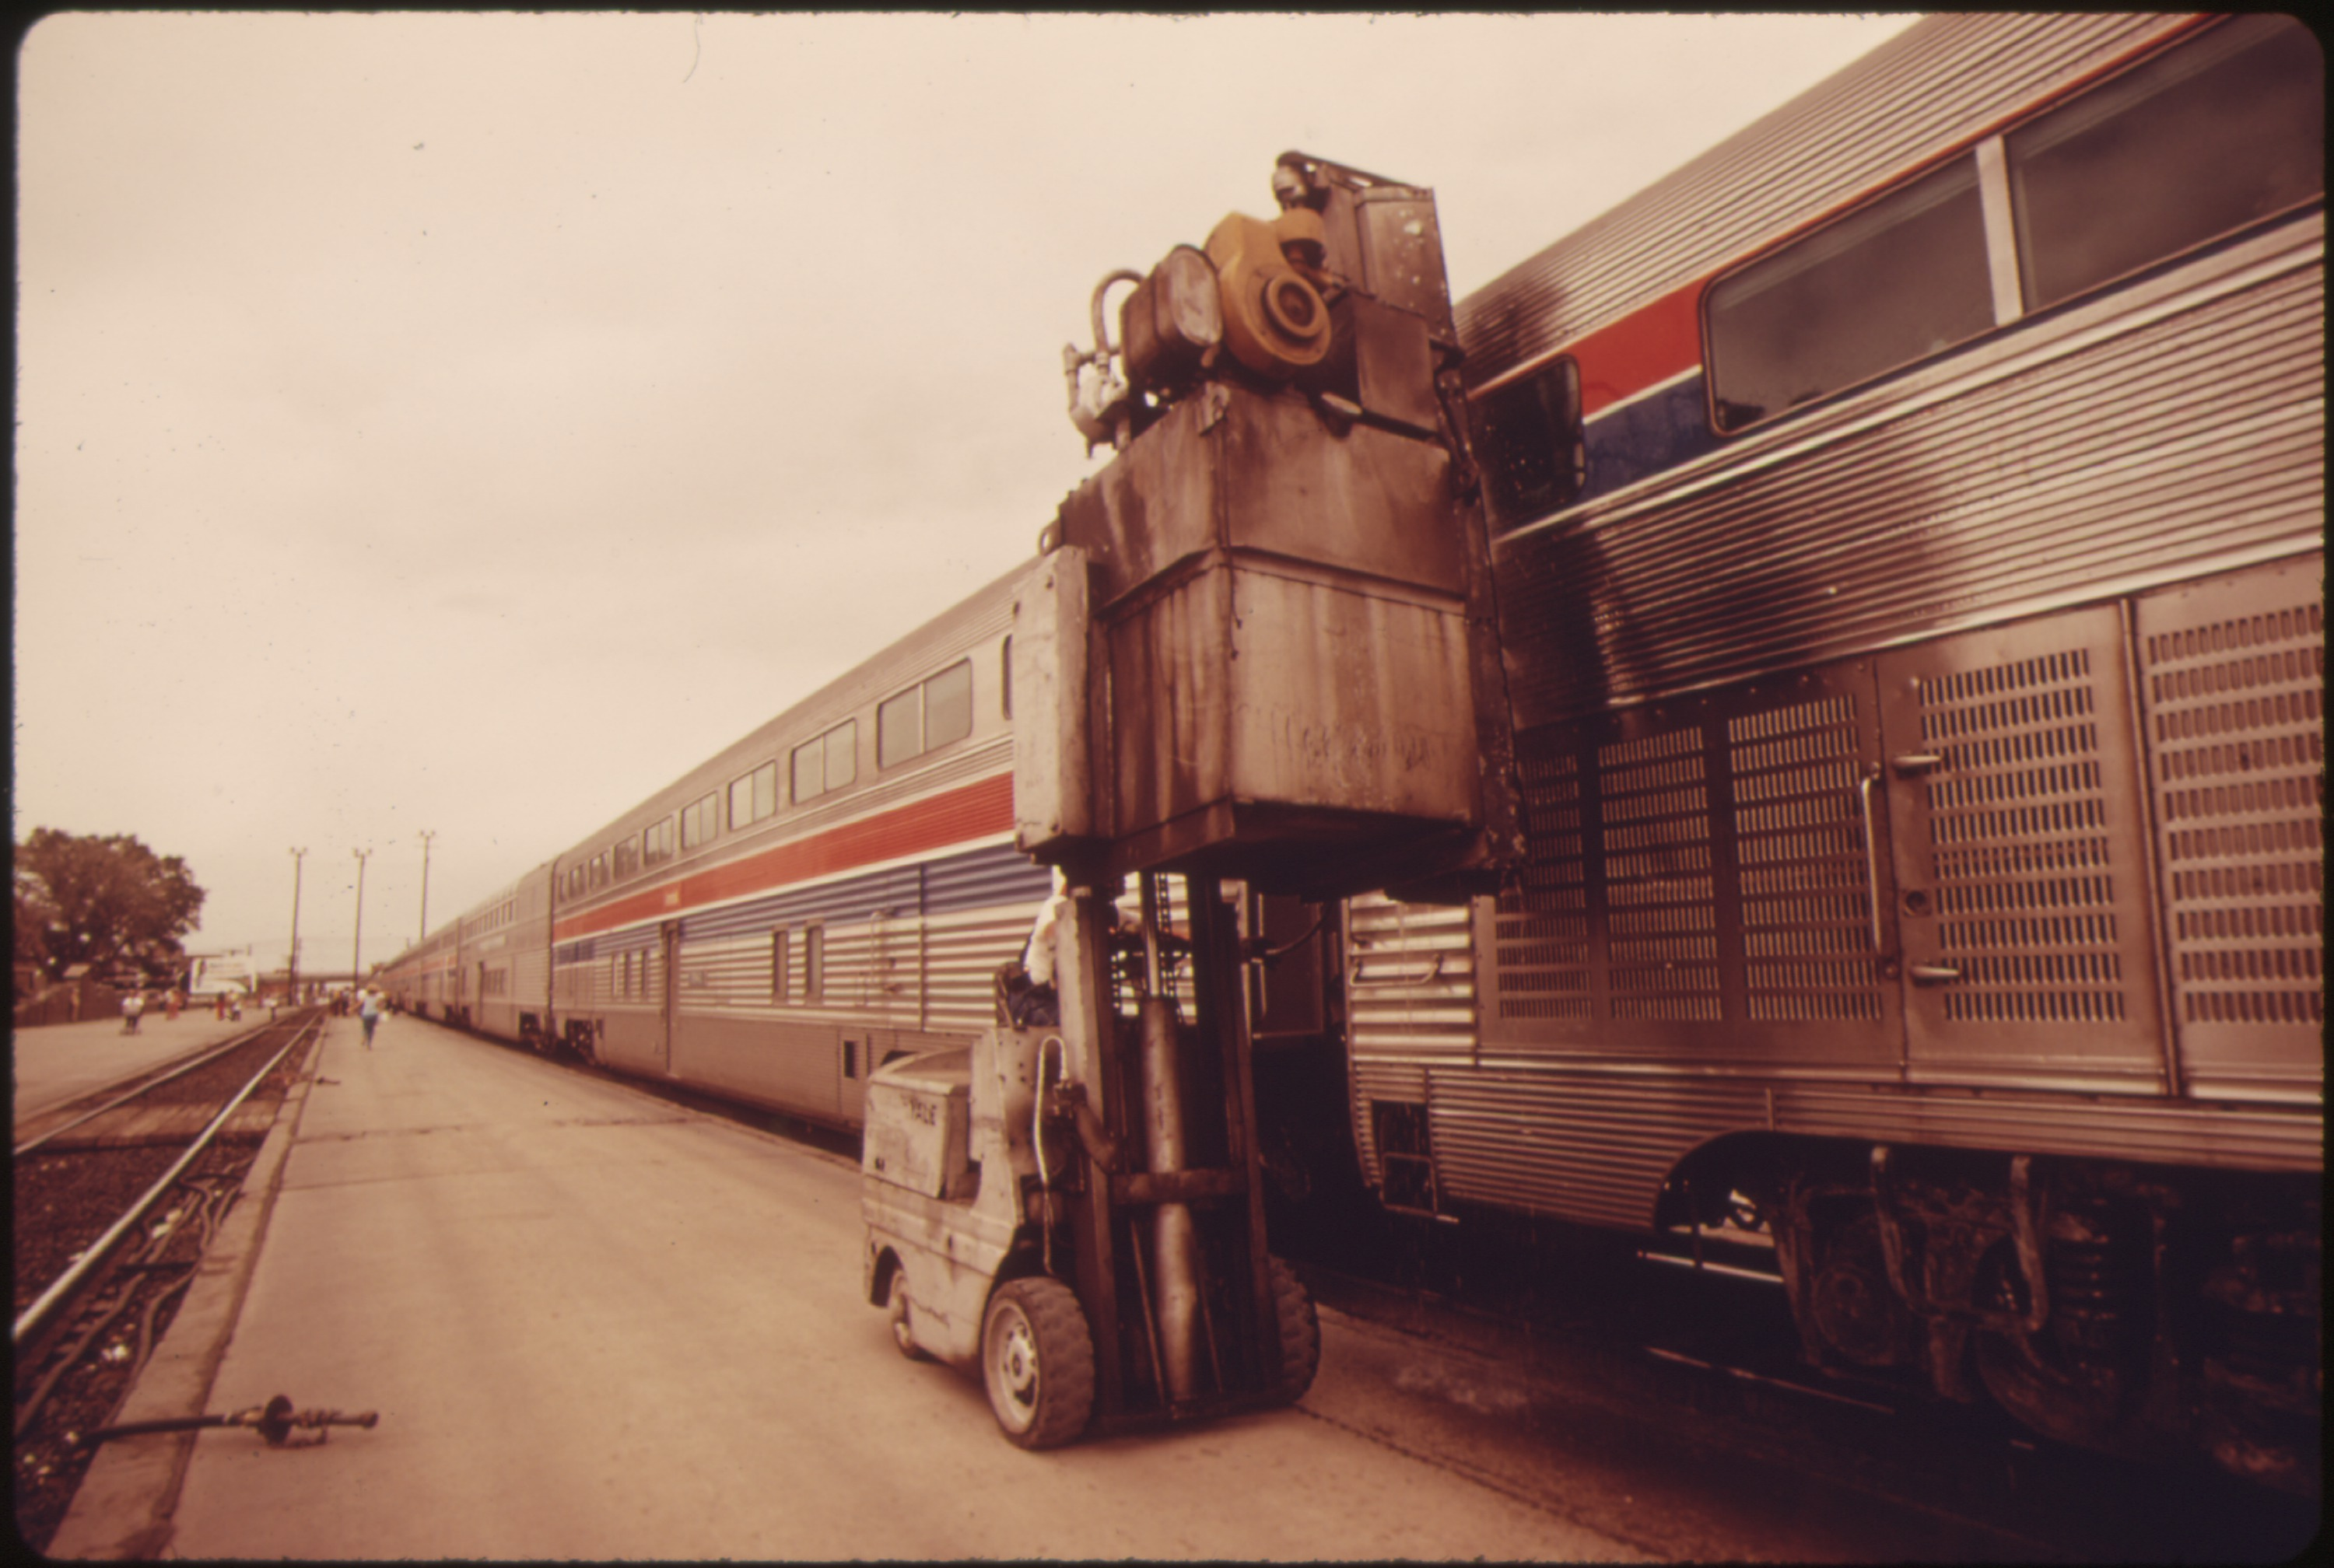 File:WINDOW WASHING EQUIPMENT IS USED ON AMTRAKu0027S SOUTHWEST LIMITED DURING A STOP AT ALBUQUERQUE